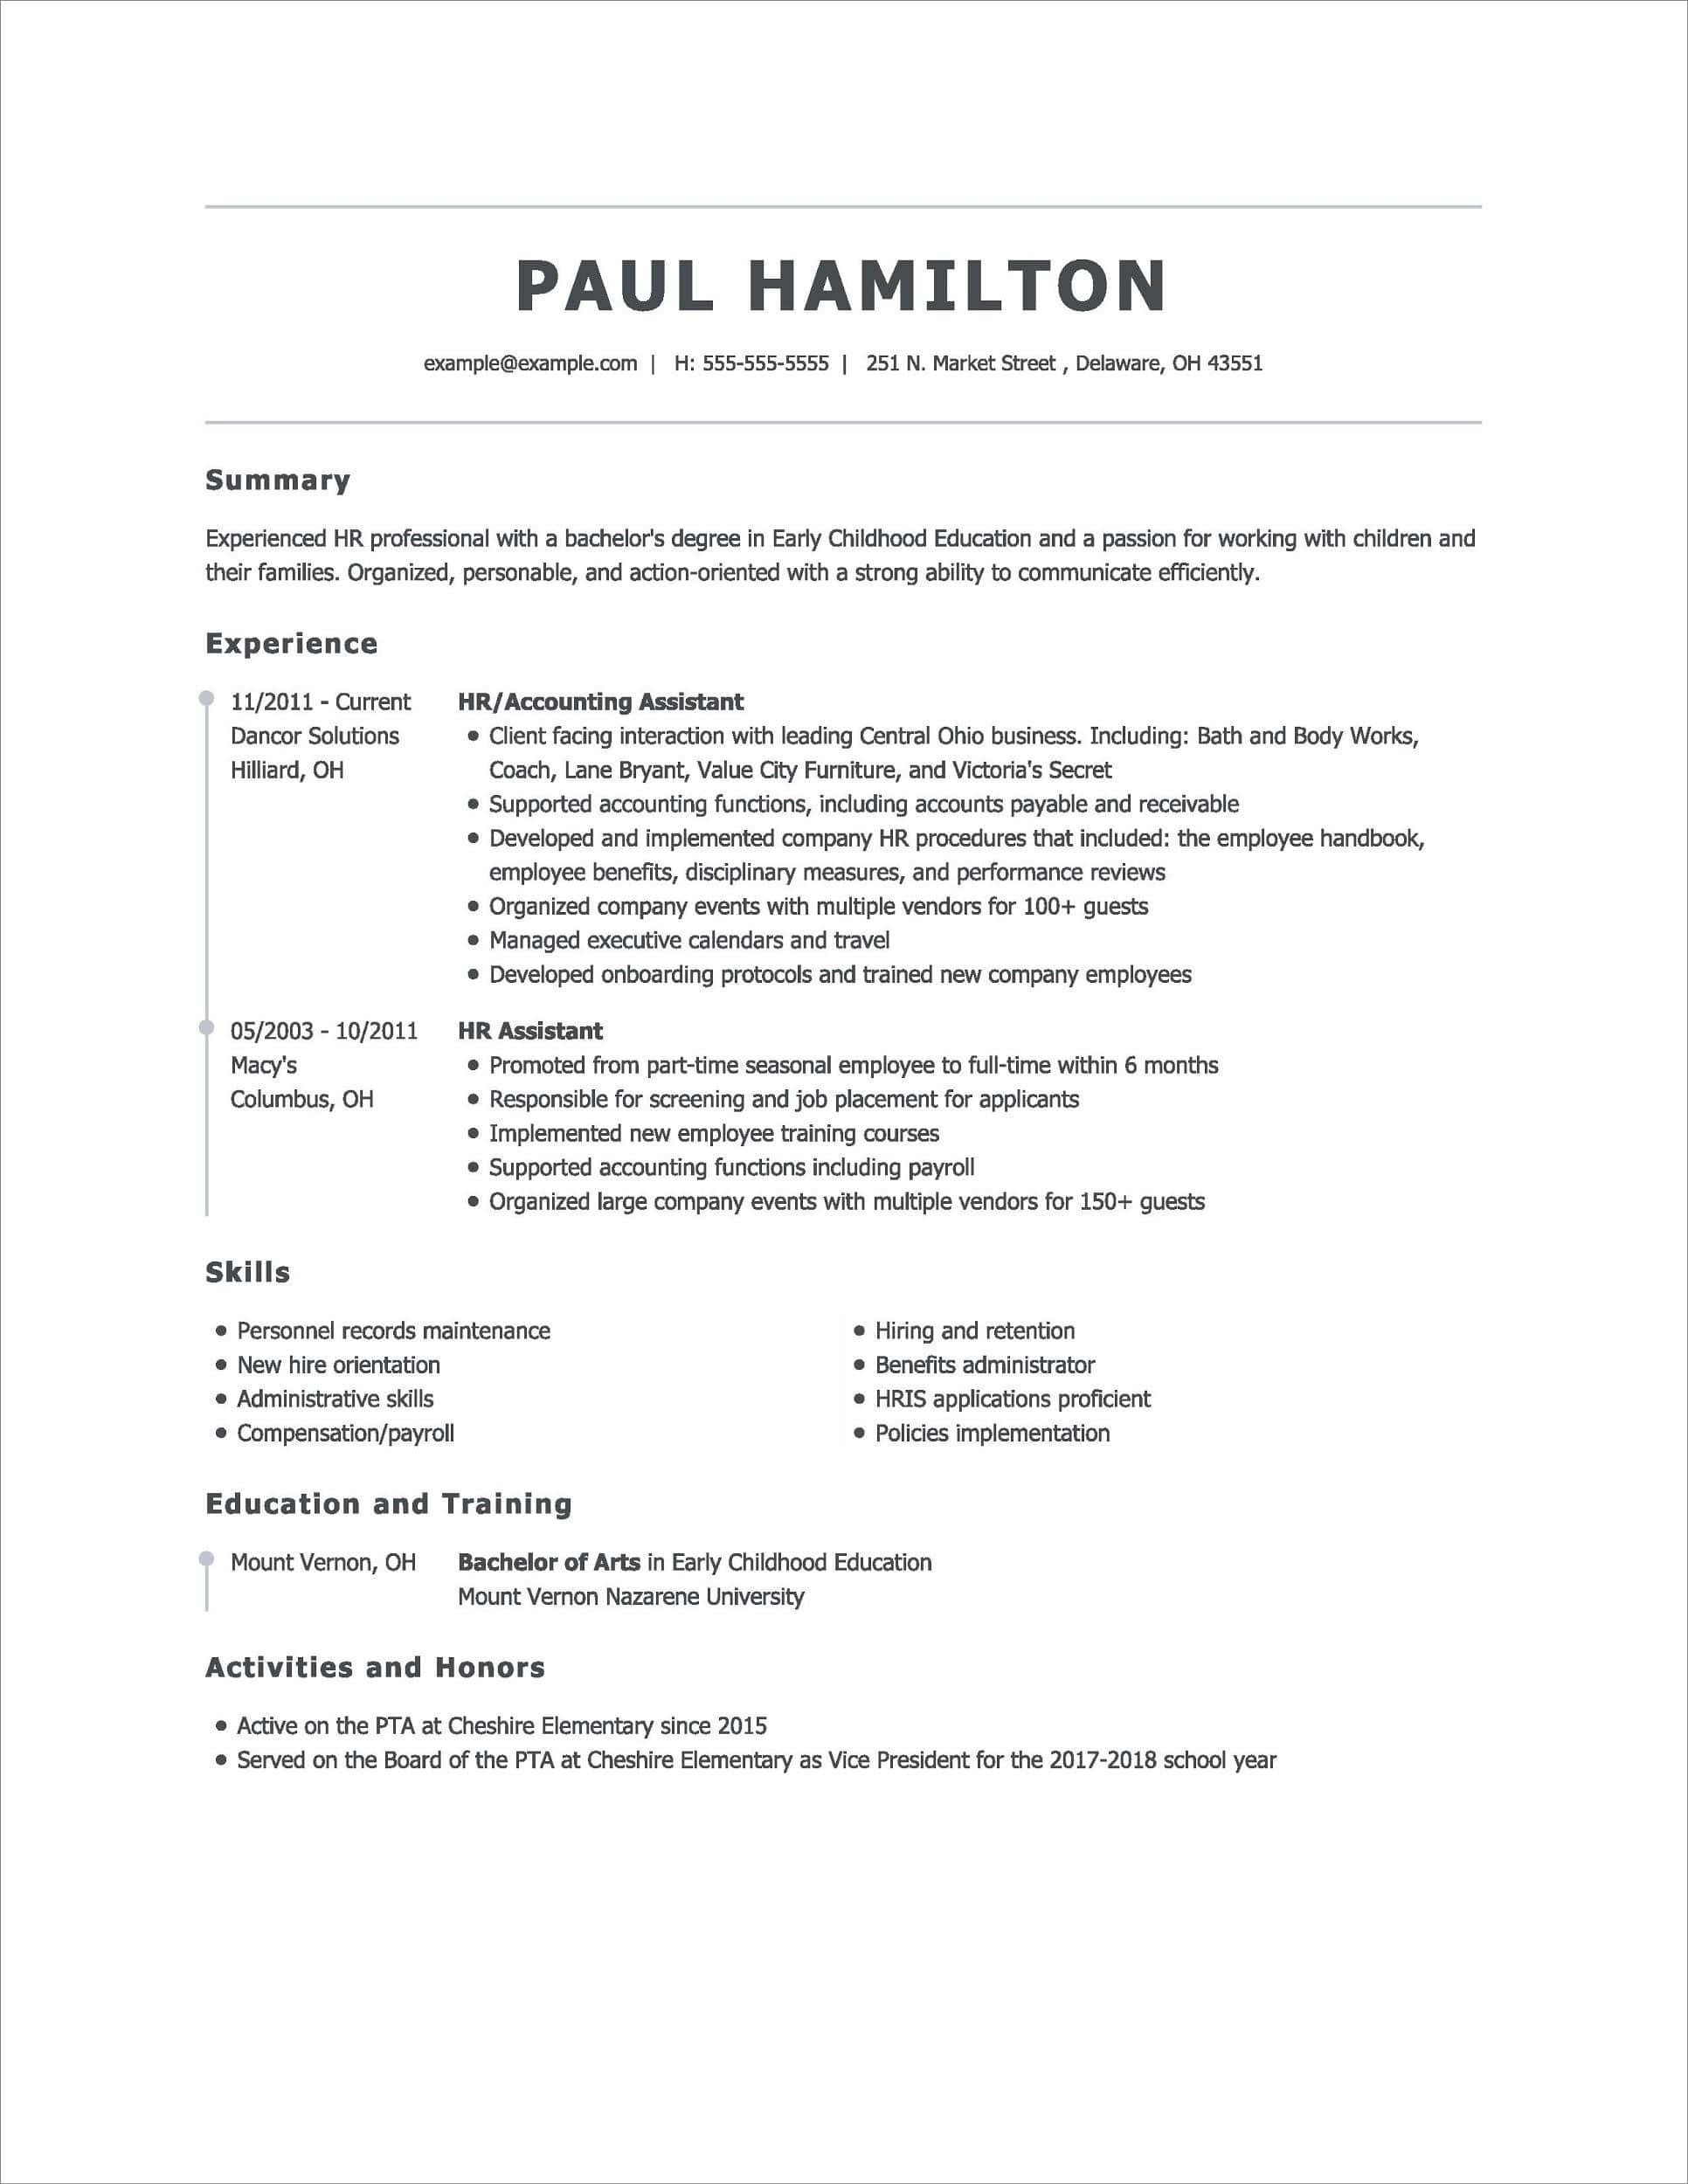 best resume builders free paid features builder examples social media manager salon Resume Resume Builder Examples